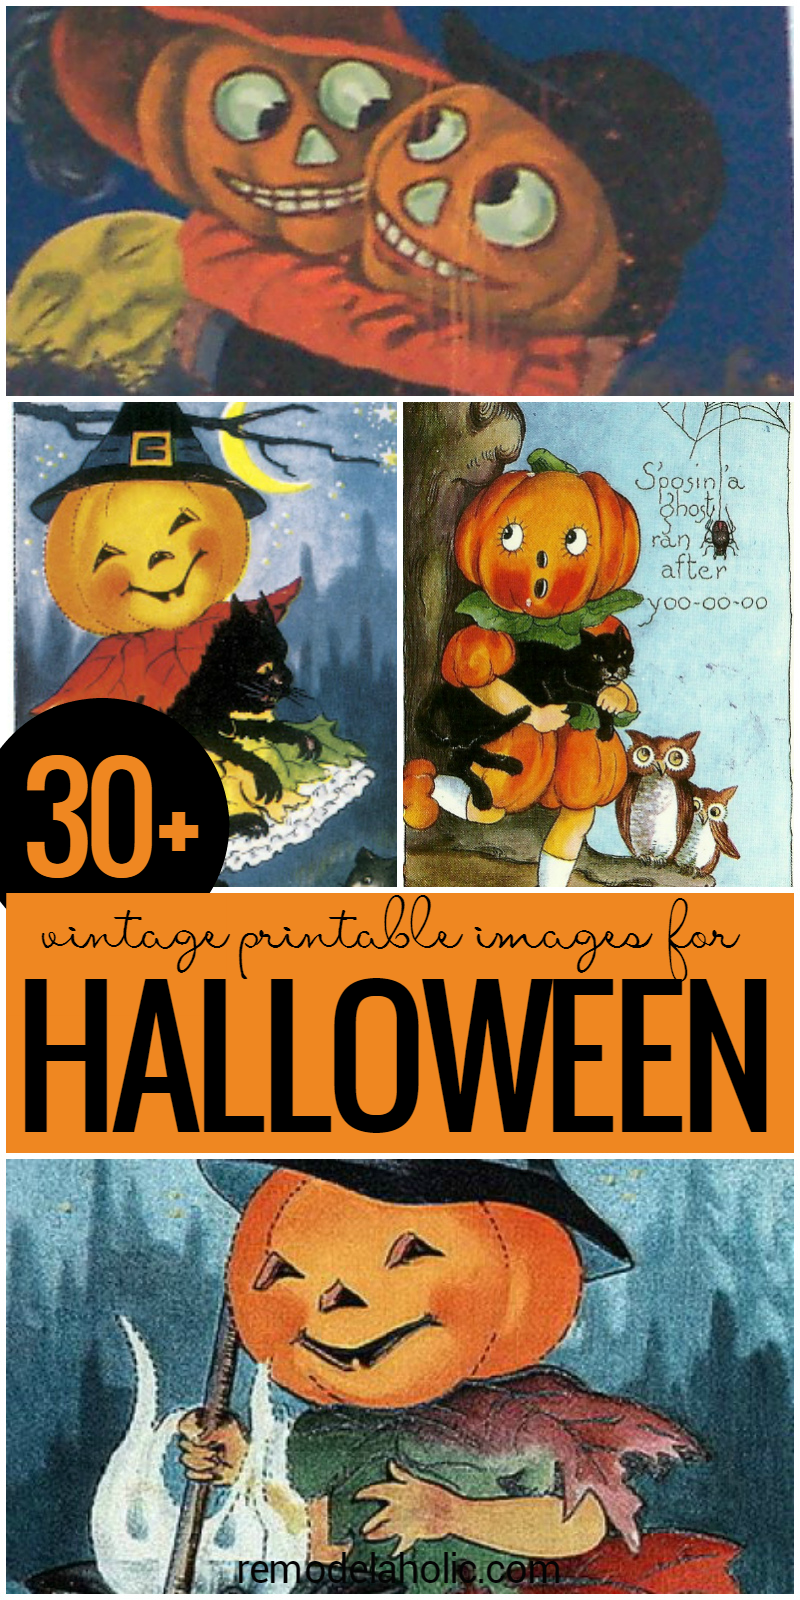 Remodelaholic 30 free printable vintage halloween images - Where can i buy halloween decorations ...